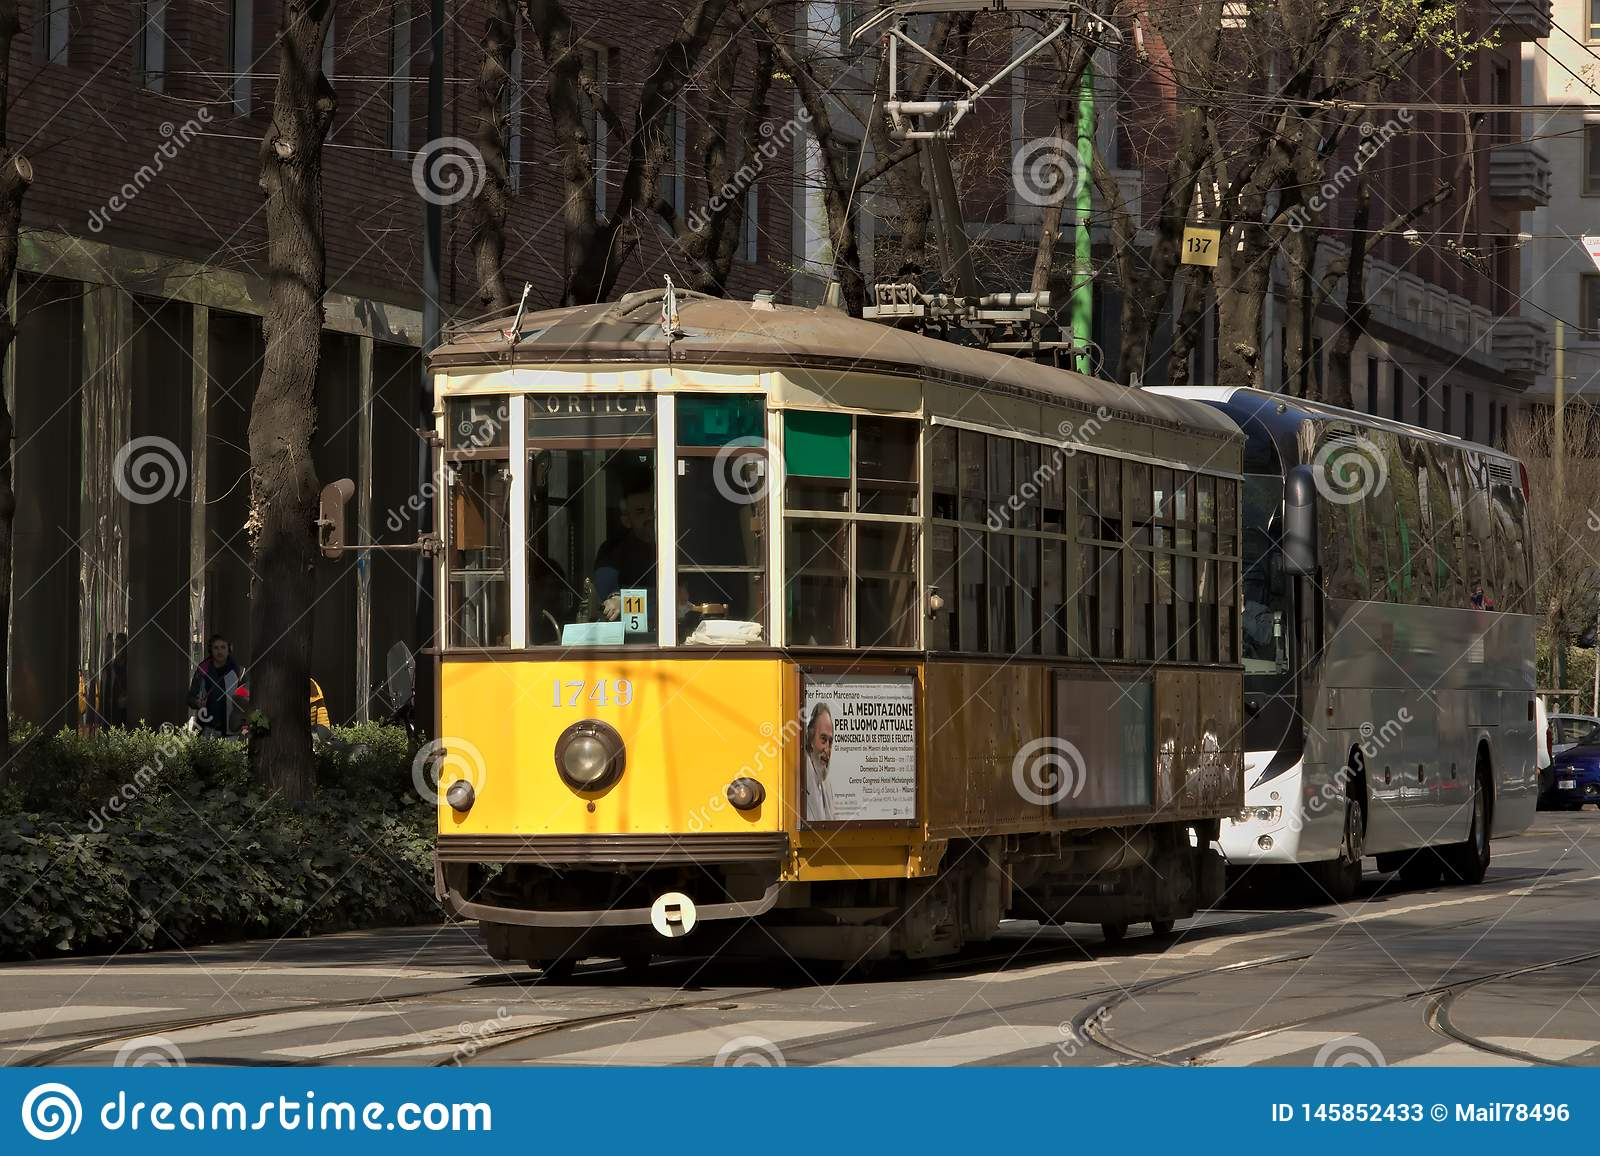 Milan. March 21 2019. An ancient tram in the center of Milan